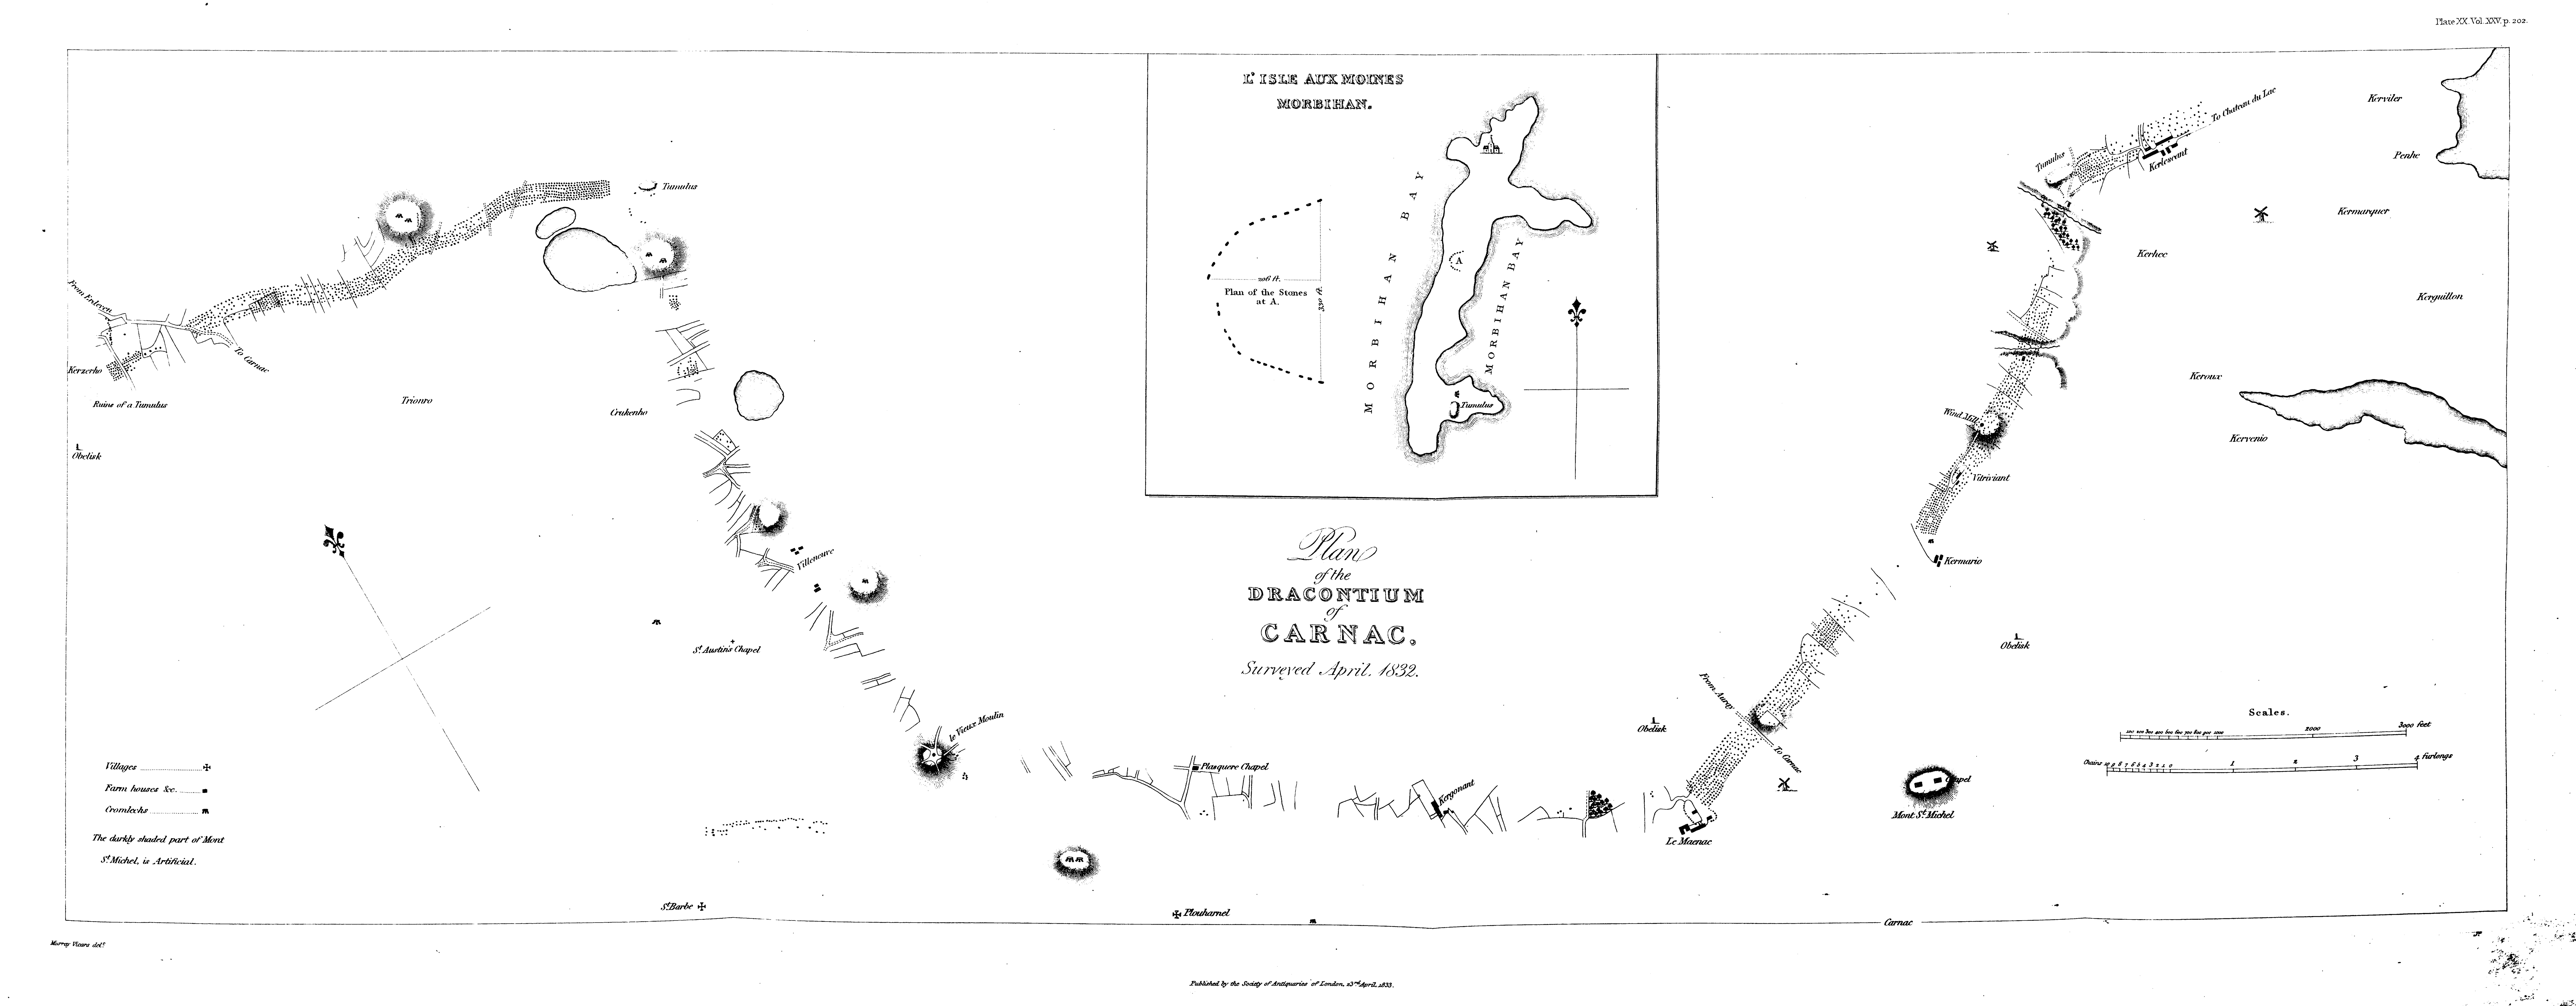 https://upload.wikimedia.org/wikipedia/commons/9/9d/Plan_of_the_Dracontium_of_Carnac._Surveyed_April_1832.jpg